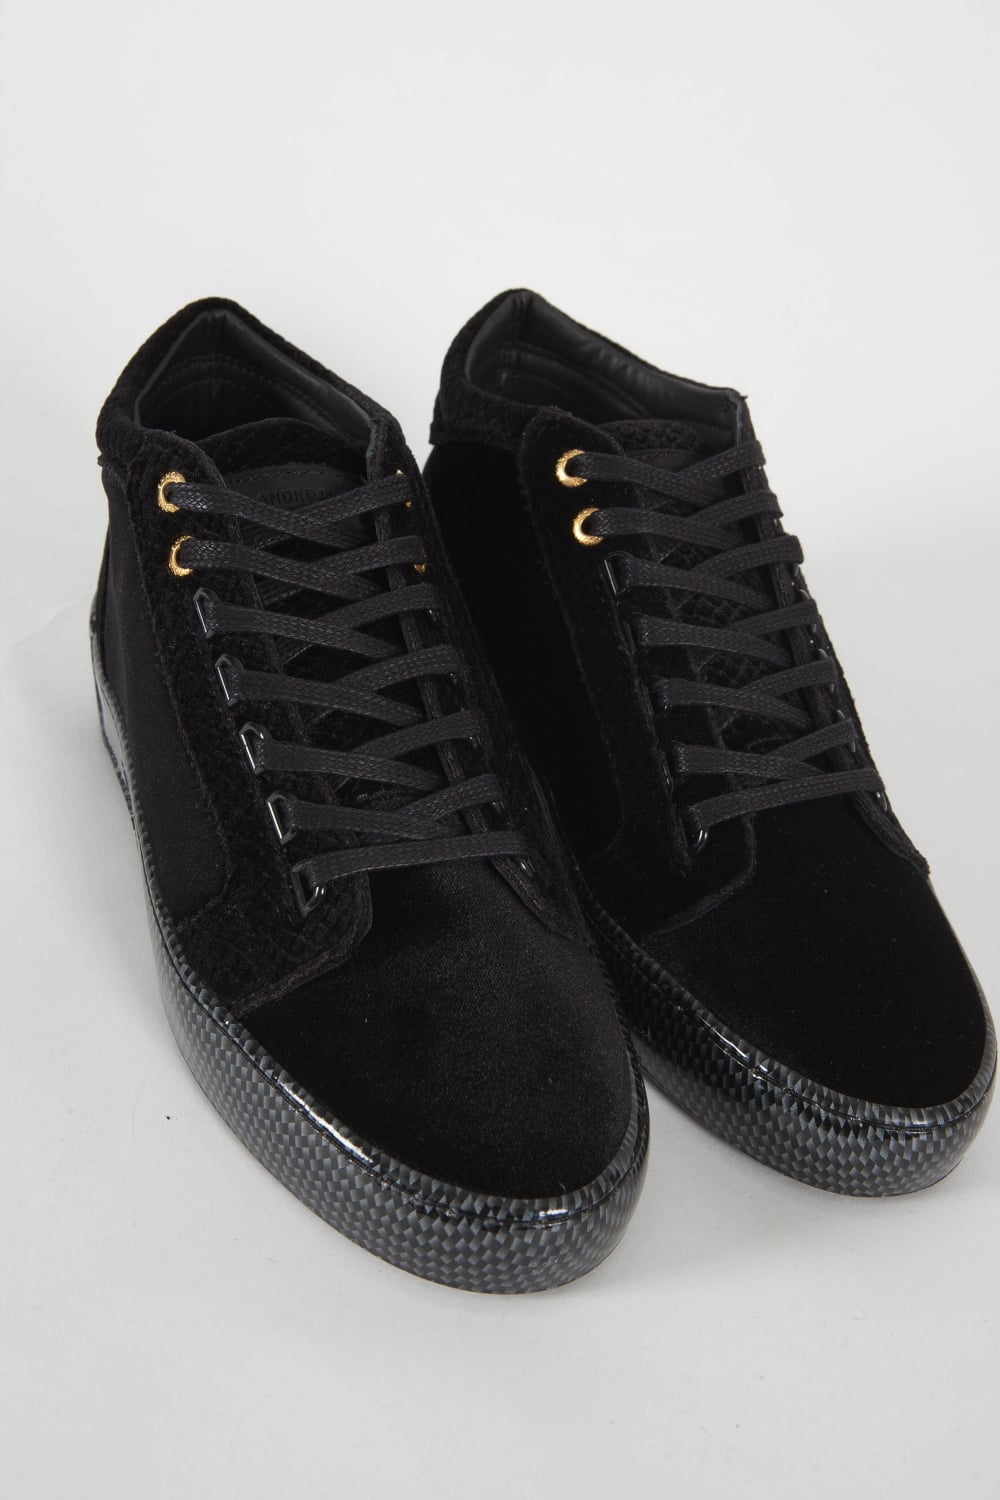 Android Homme Propulsion Mid Carbon Trainers Black Intro